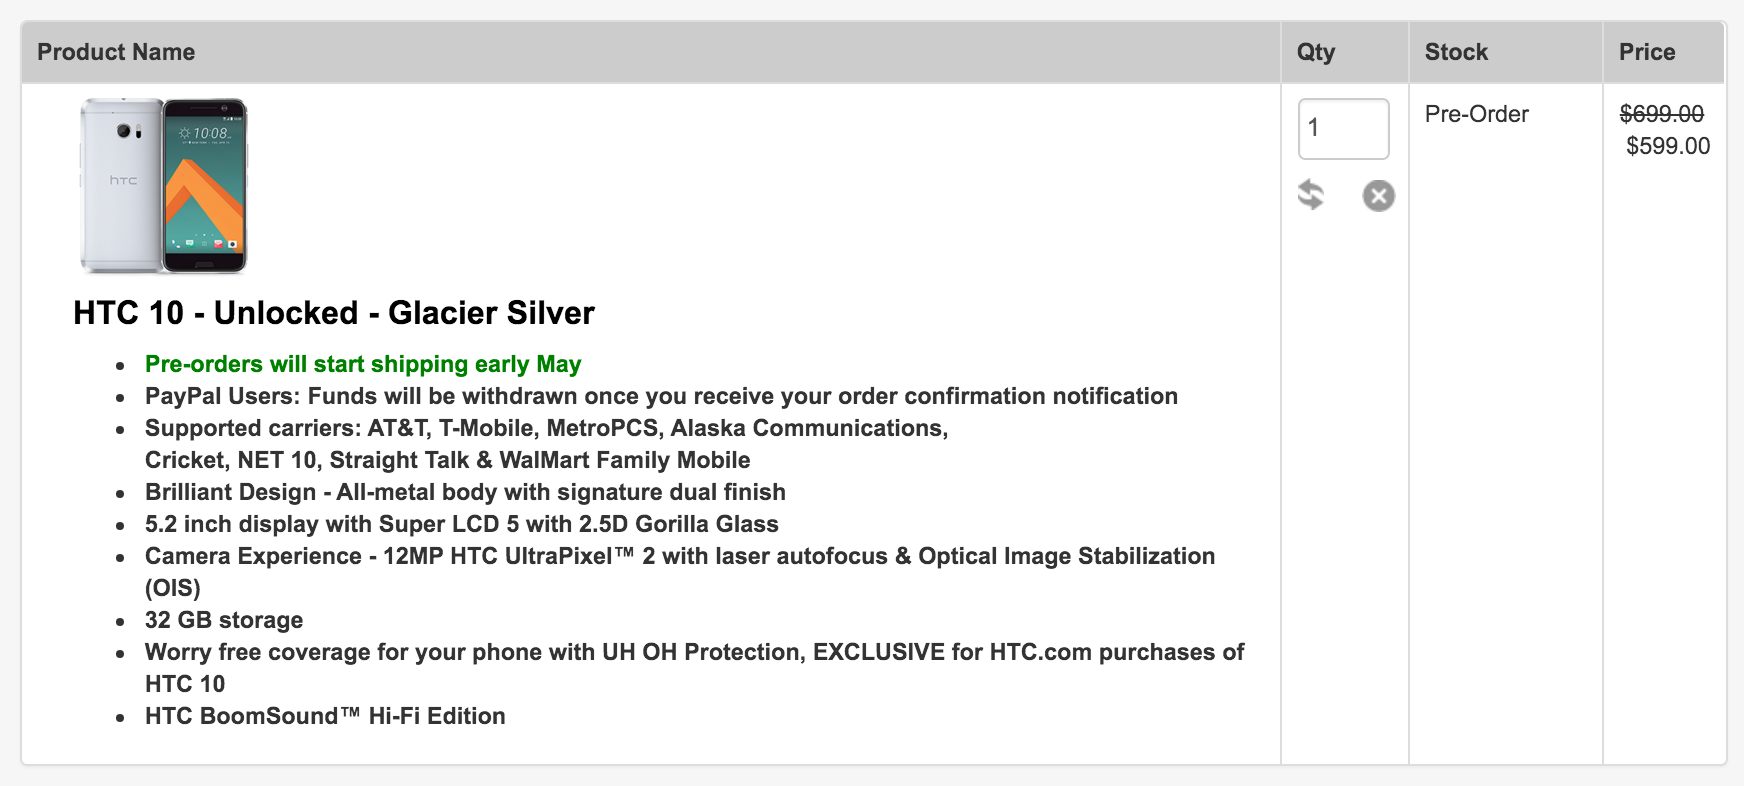 Htc coupon code